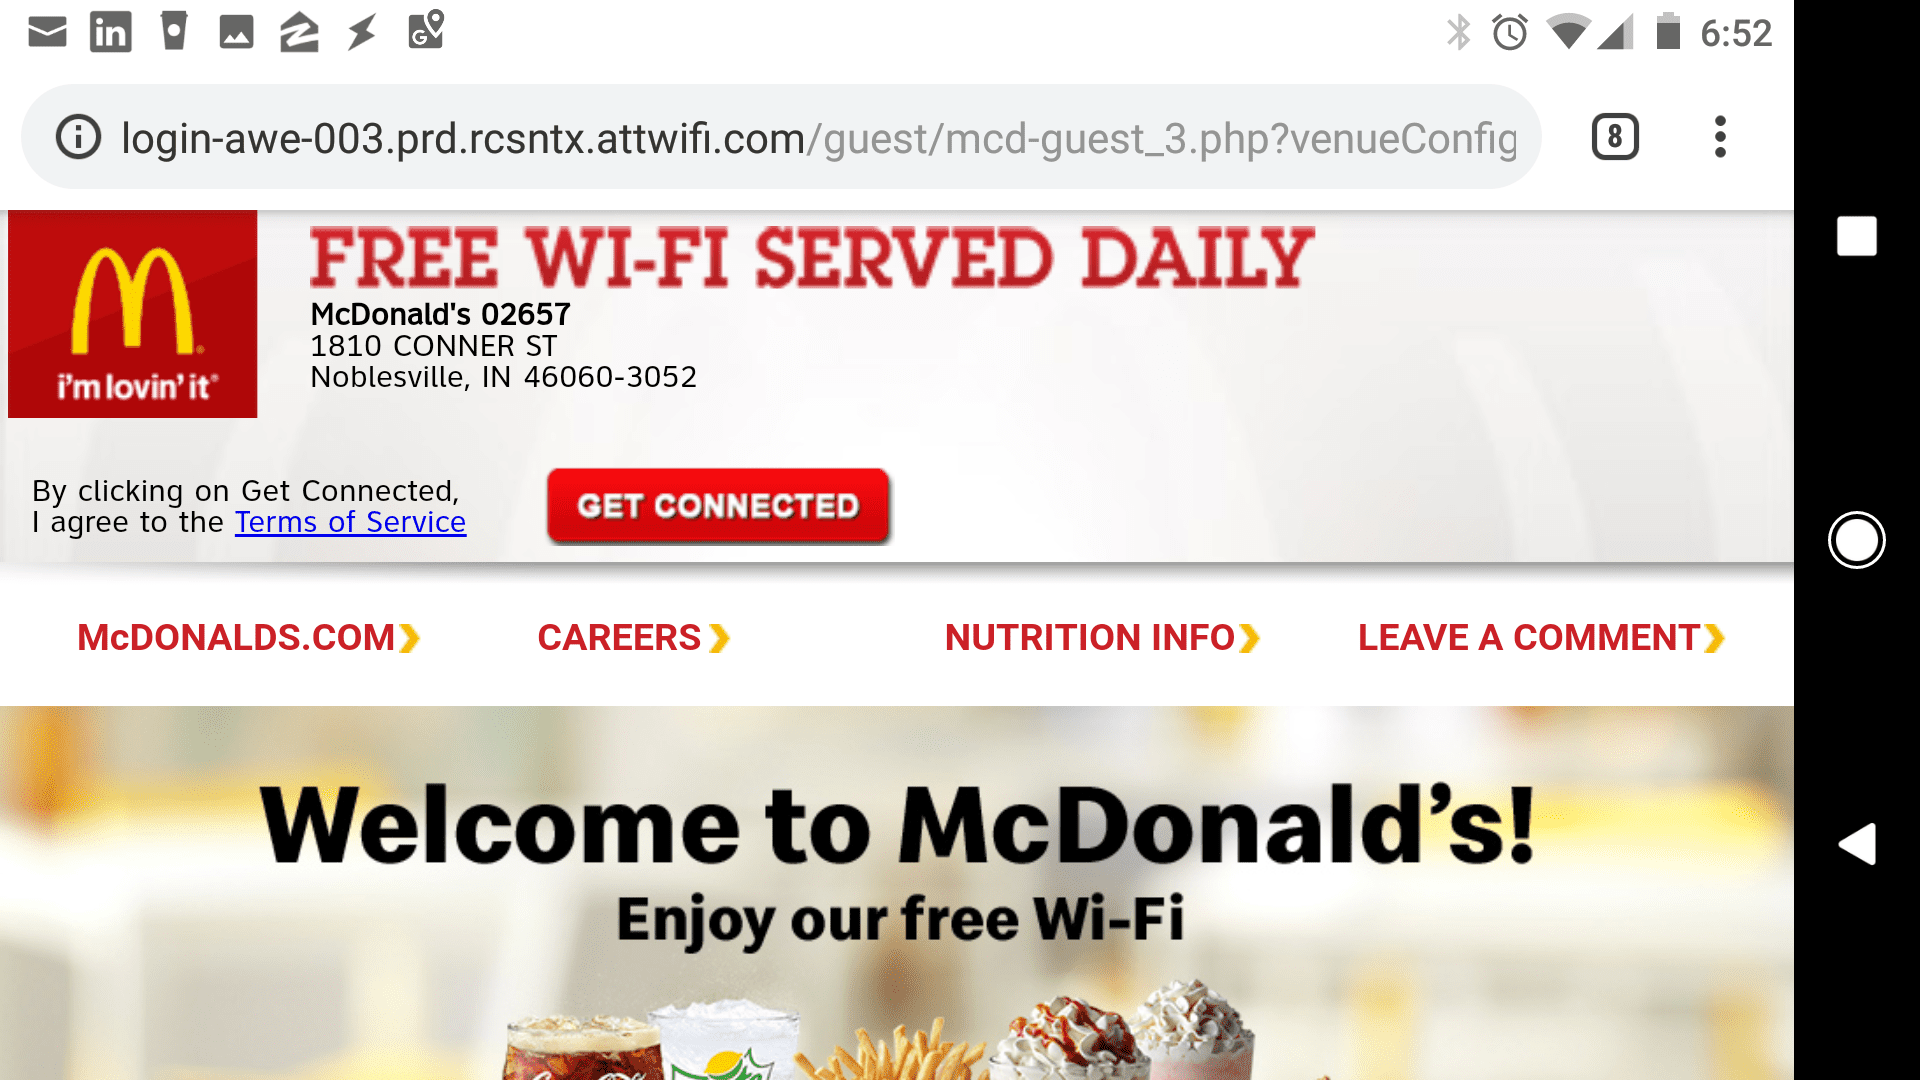 McDonald's mobile Wi-Fi connection page